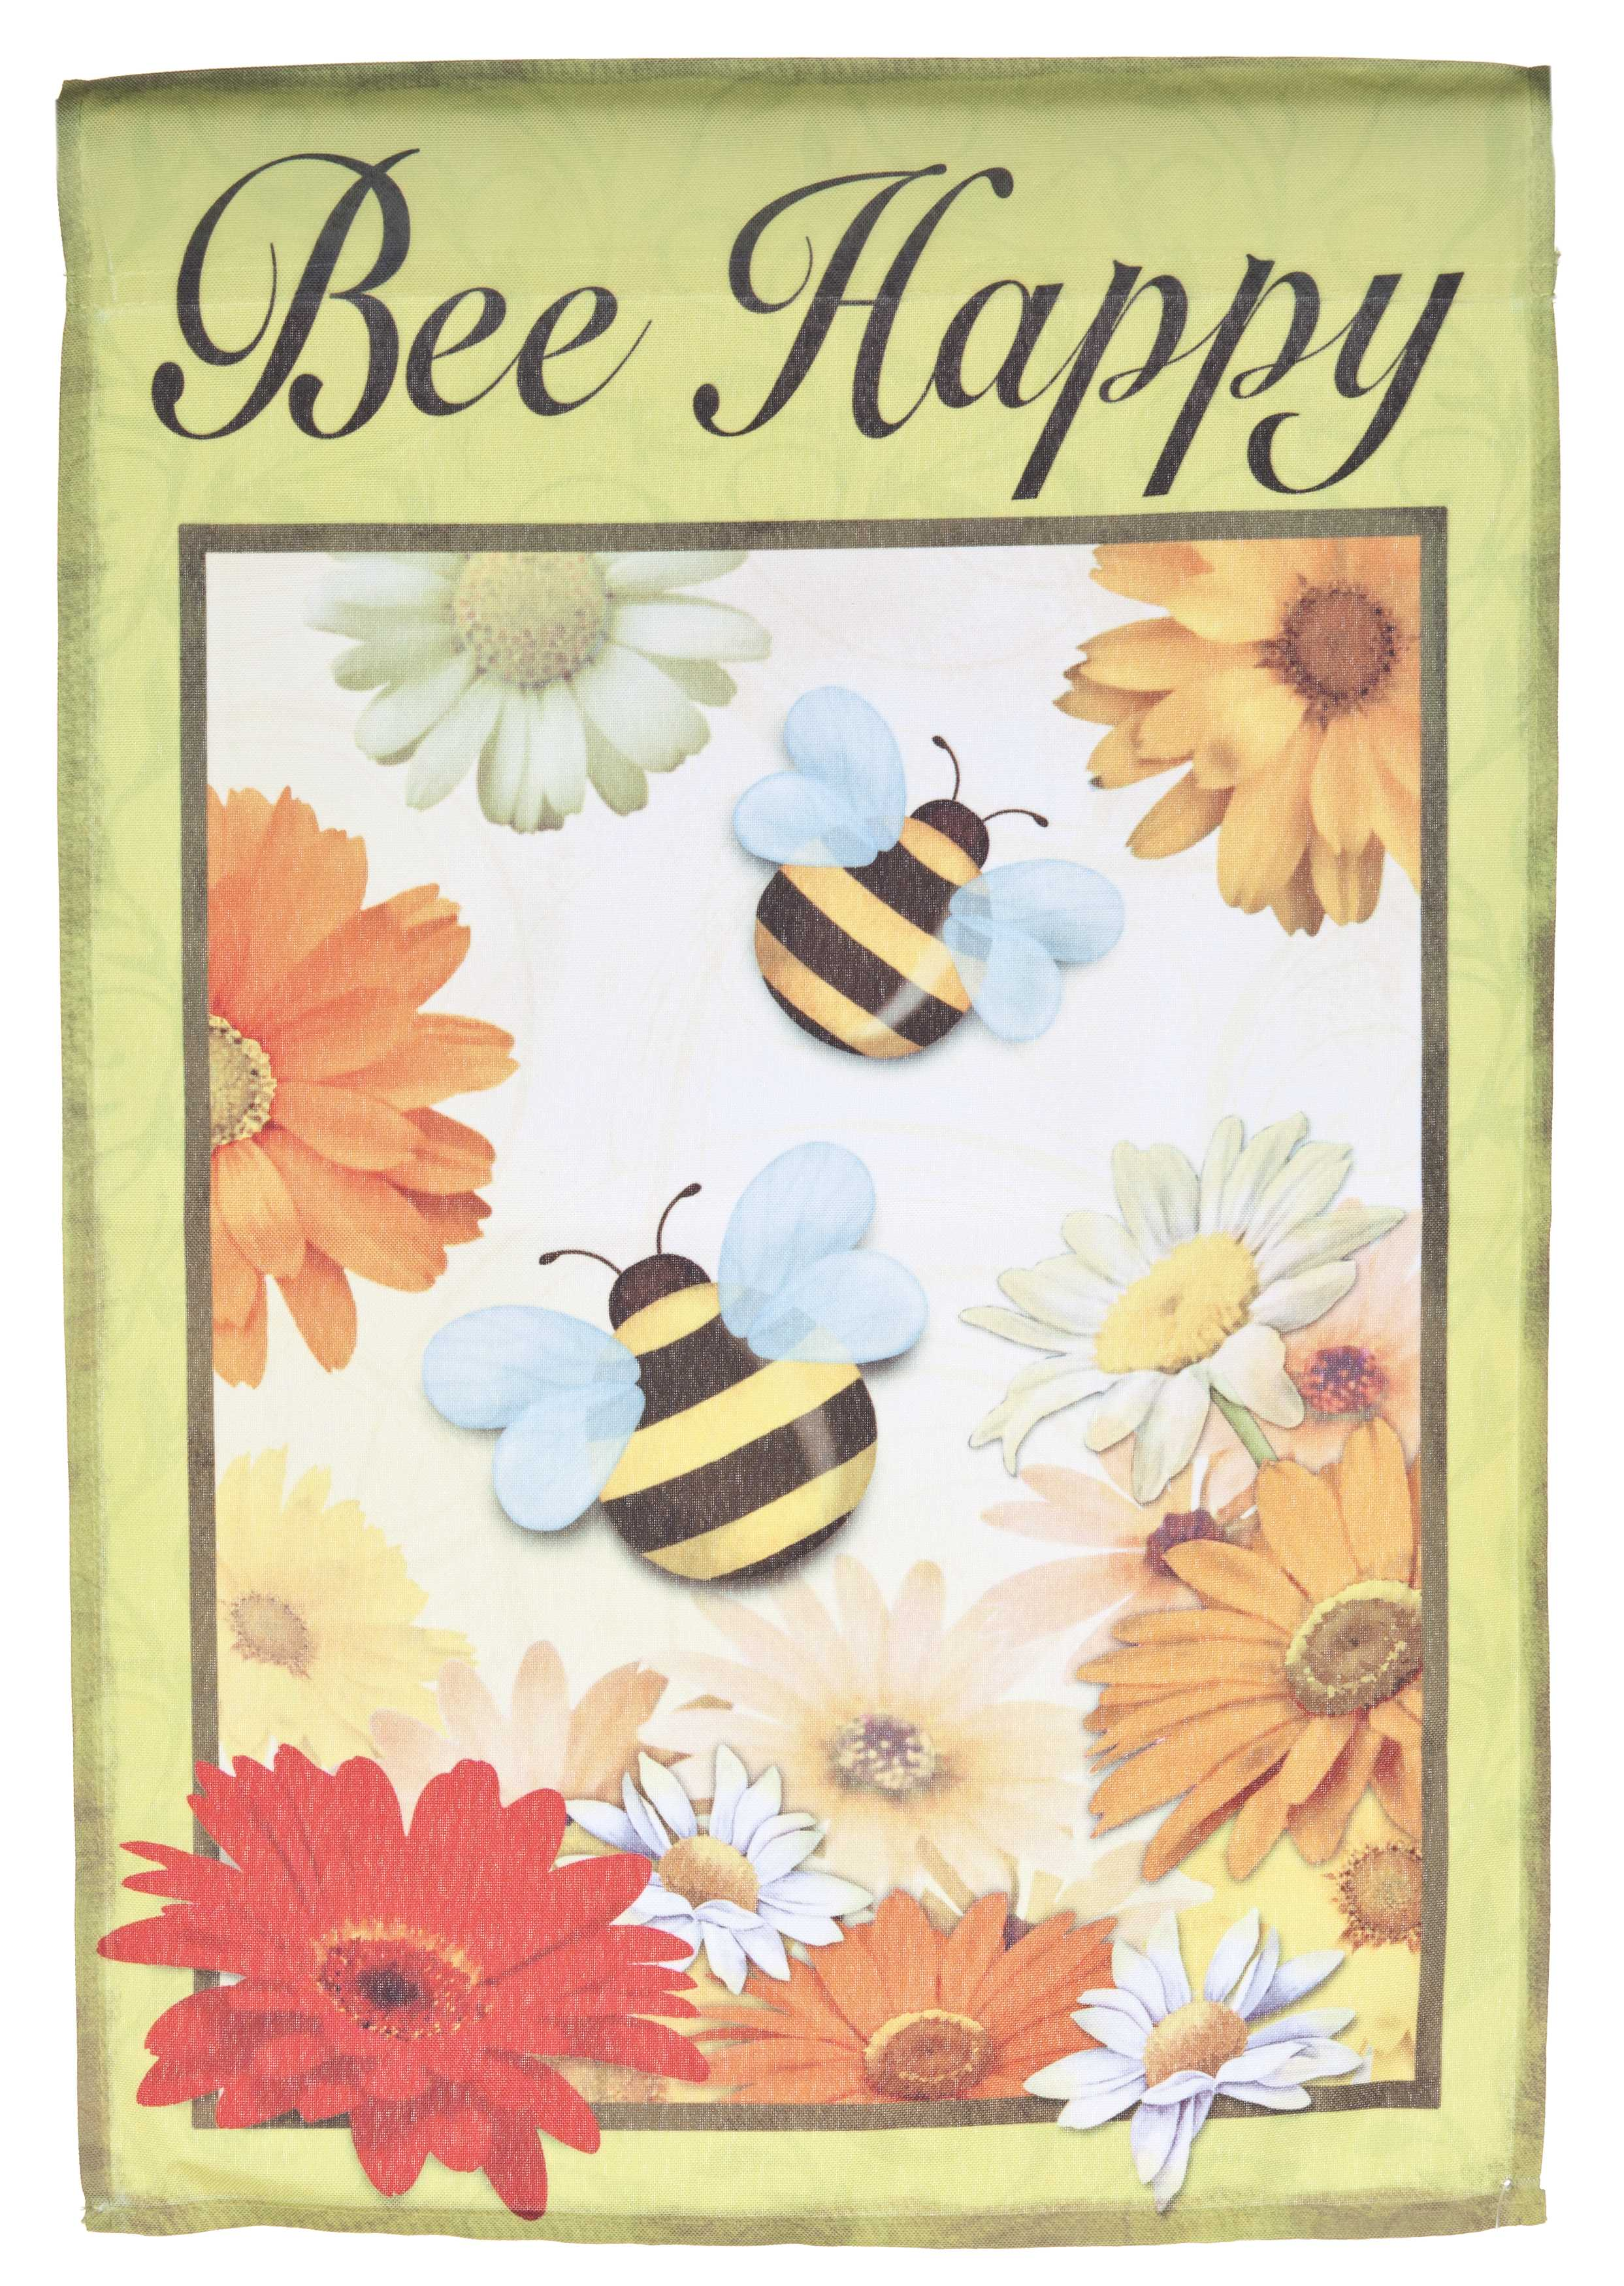 Bee Happy Lawn Flag by Garden Accents (12 x 18 Inch) by